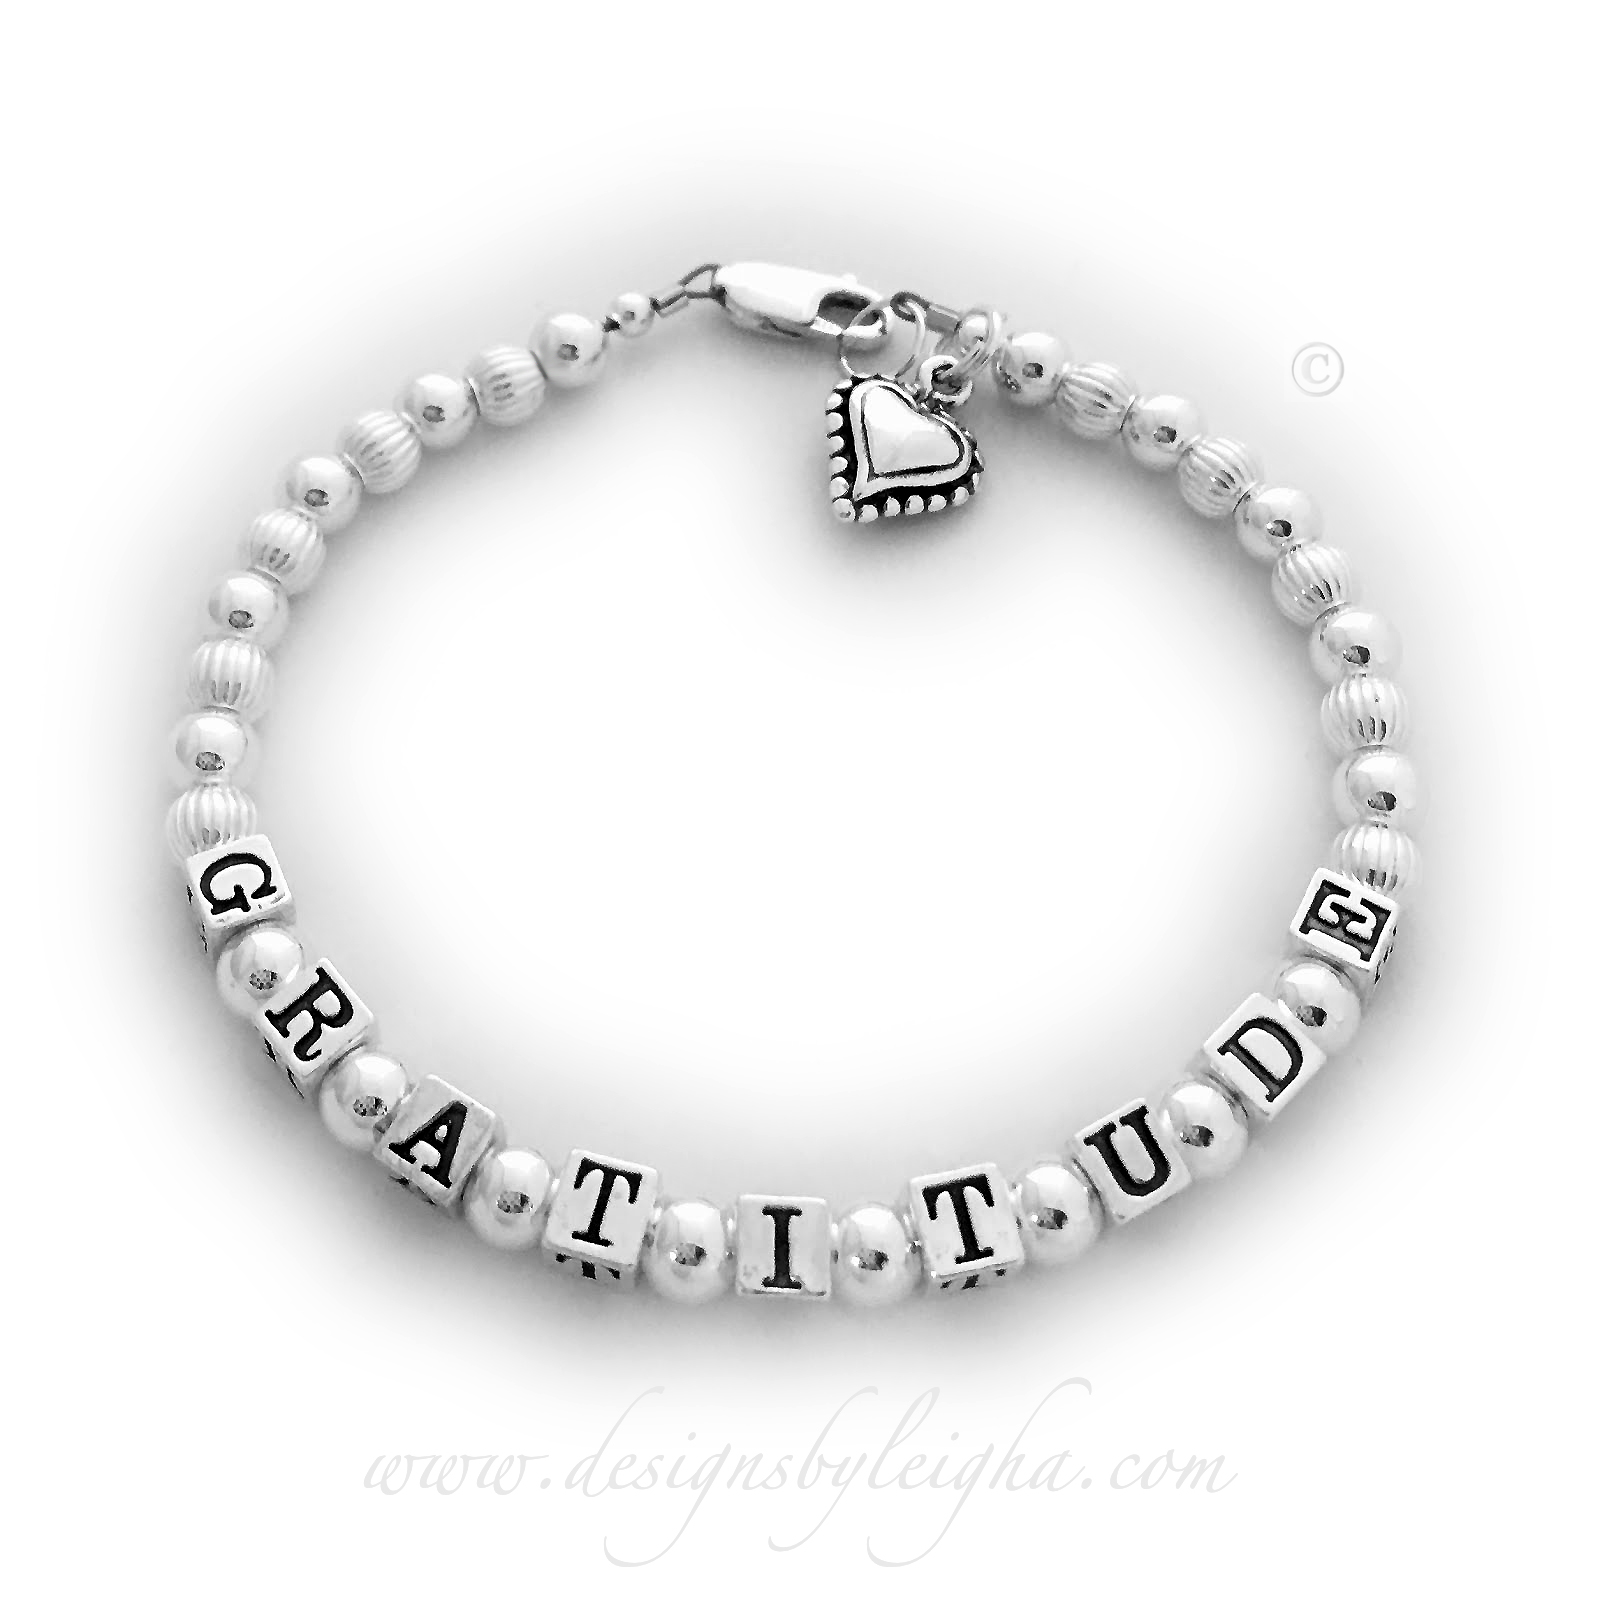 Gratitude Inspirational Bracelet shown with a Beaded Heart Charm www.LeighaMontigue.com